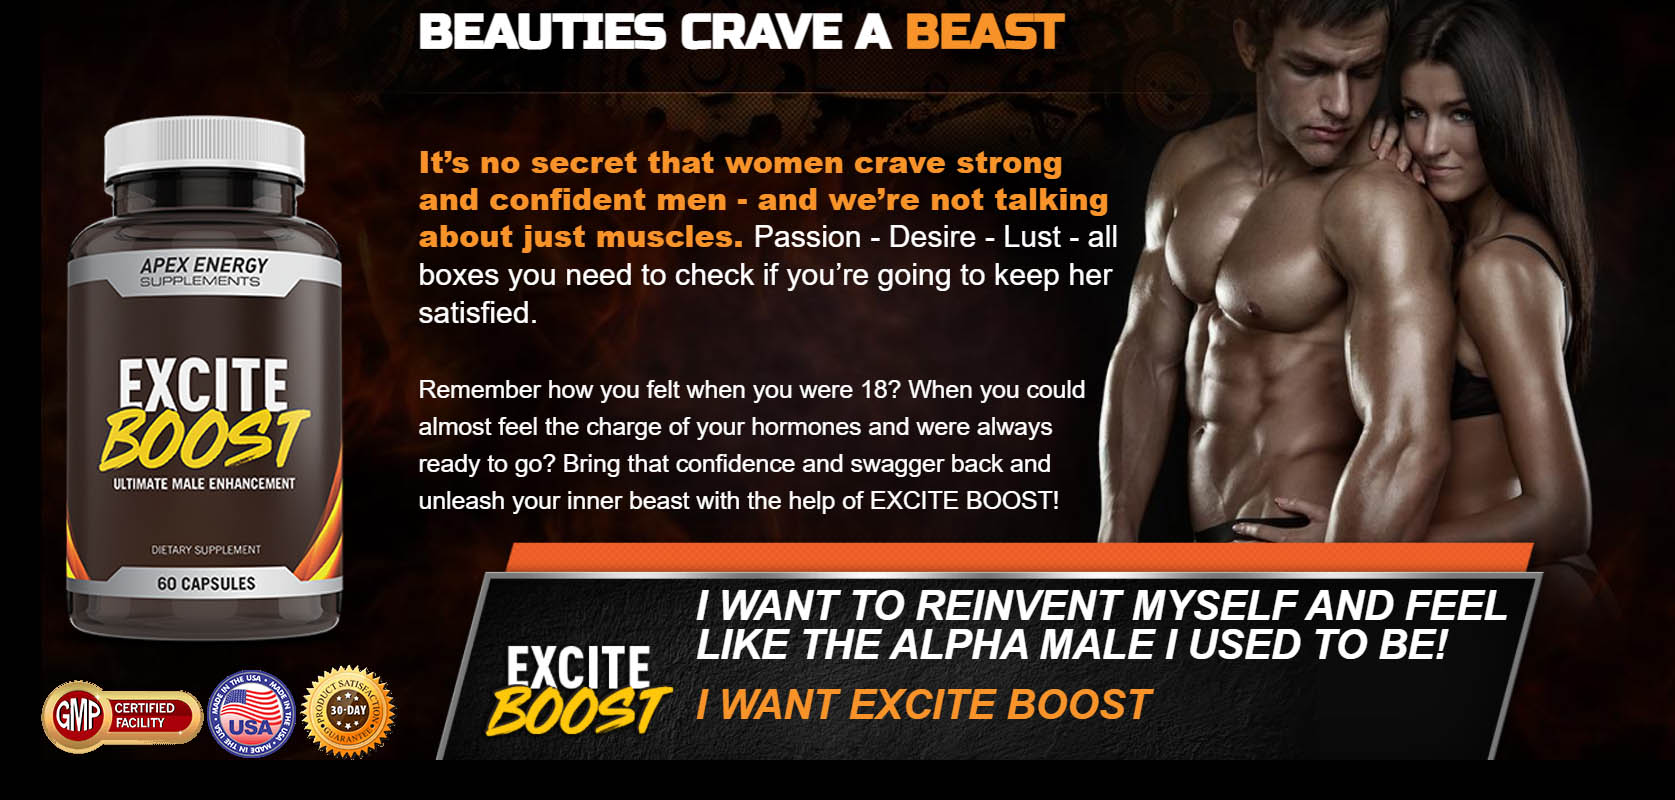 Excite-Boost-Male-Enhancement12gjgm